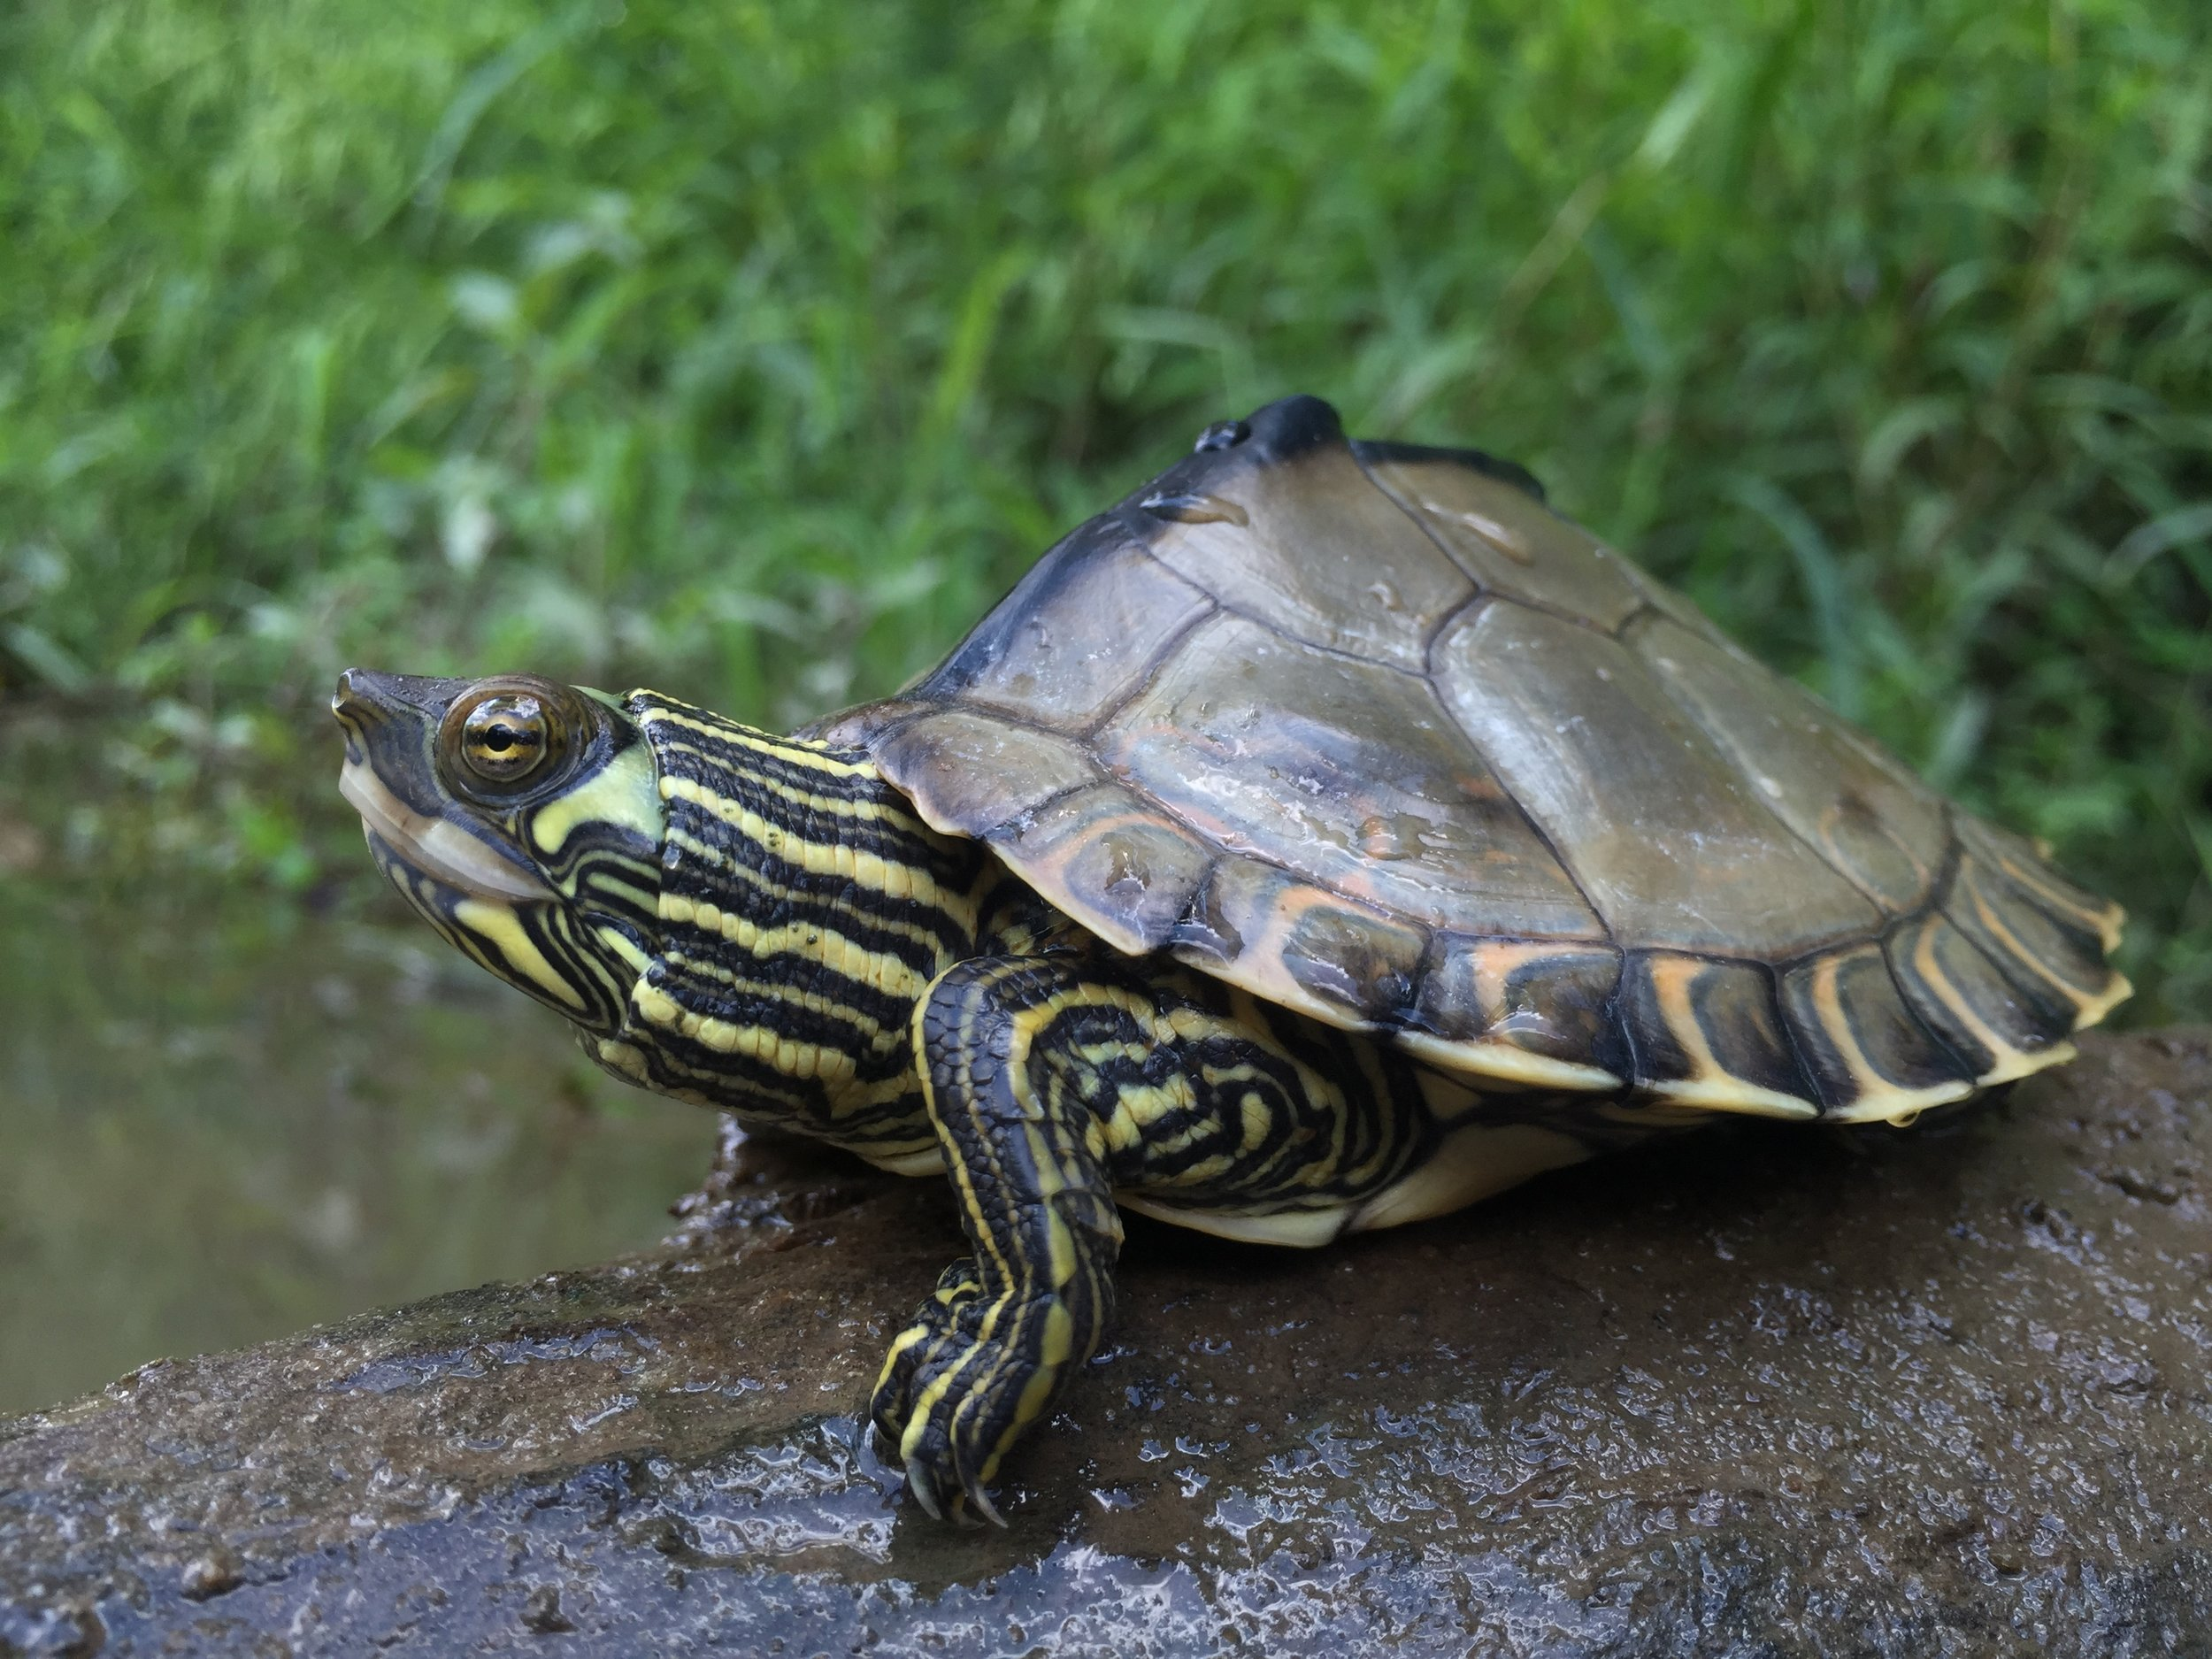 Pearl River map turtle (Graptemys pearlensis). Photograph by Timothy J. Walsh